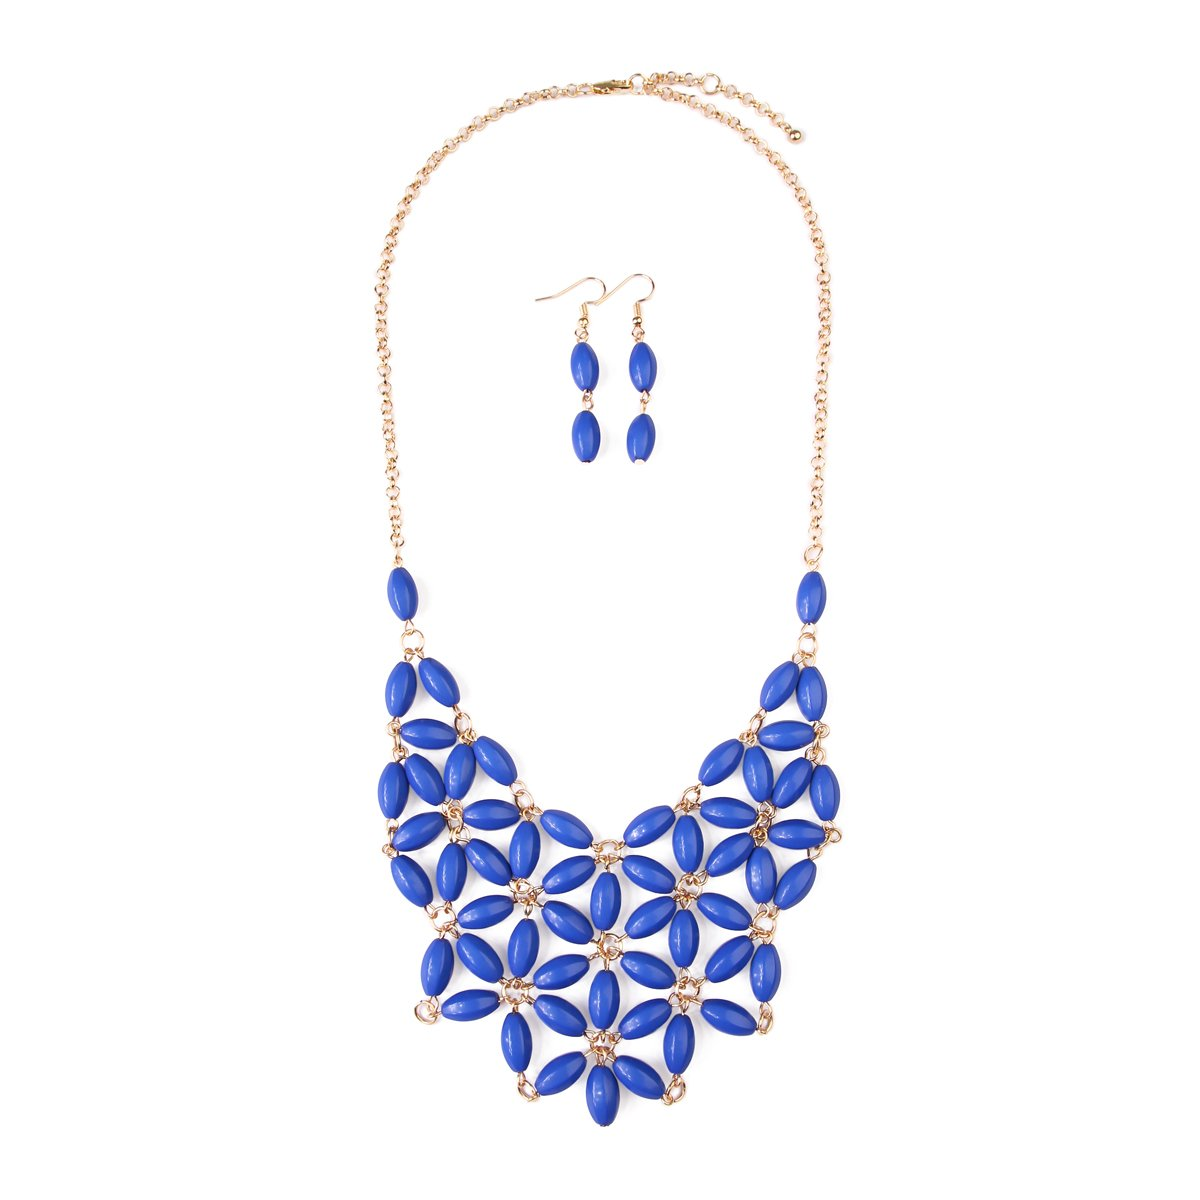 MYS Collection RIAH Fashion Floral Pattern Beaded Bubble Statement Bib Necklace - Tessellate Net Bead Fashion Statement Jewelry for Women (Sapphire)